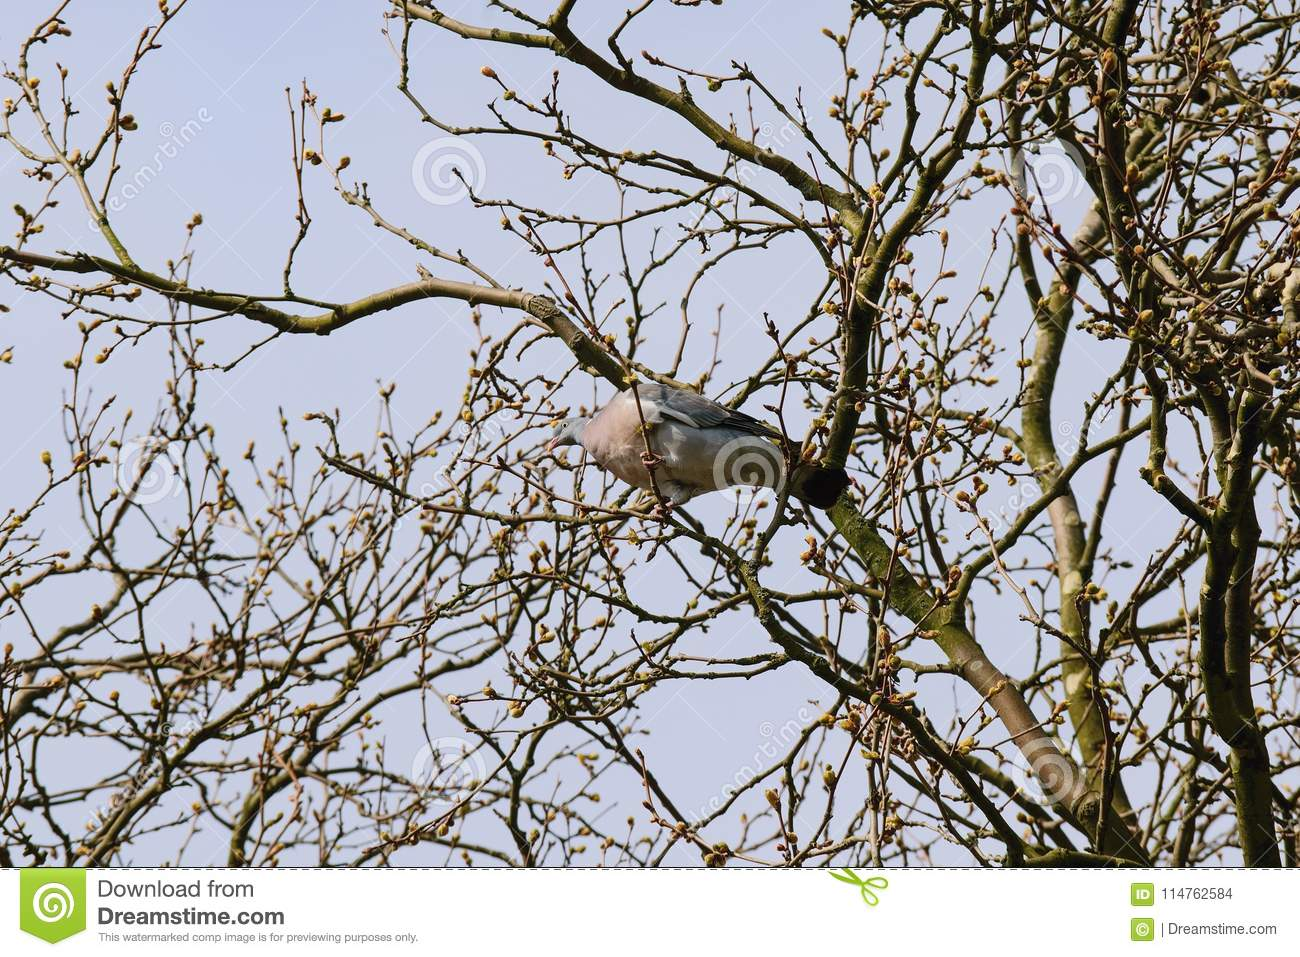 Forest pigeon on a tree branch.